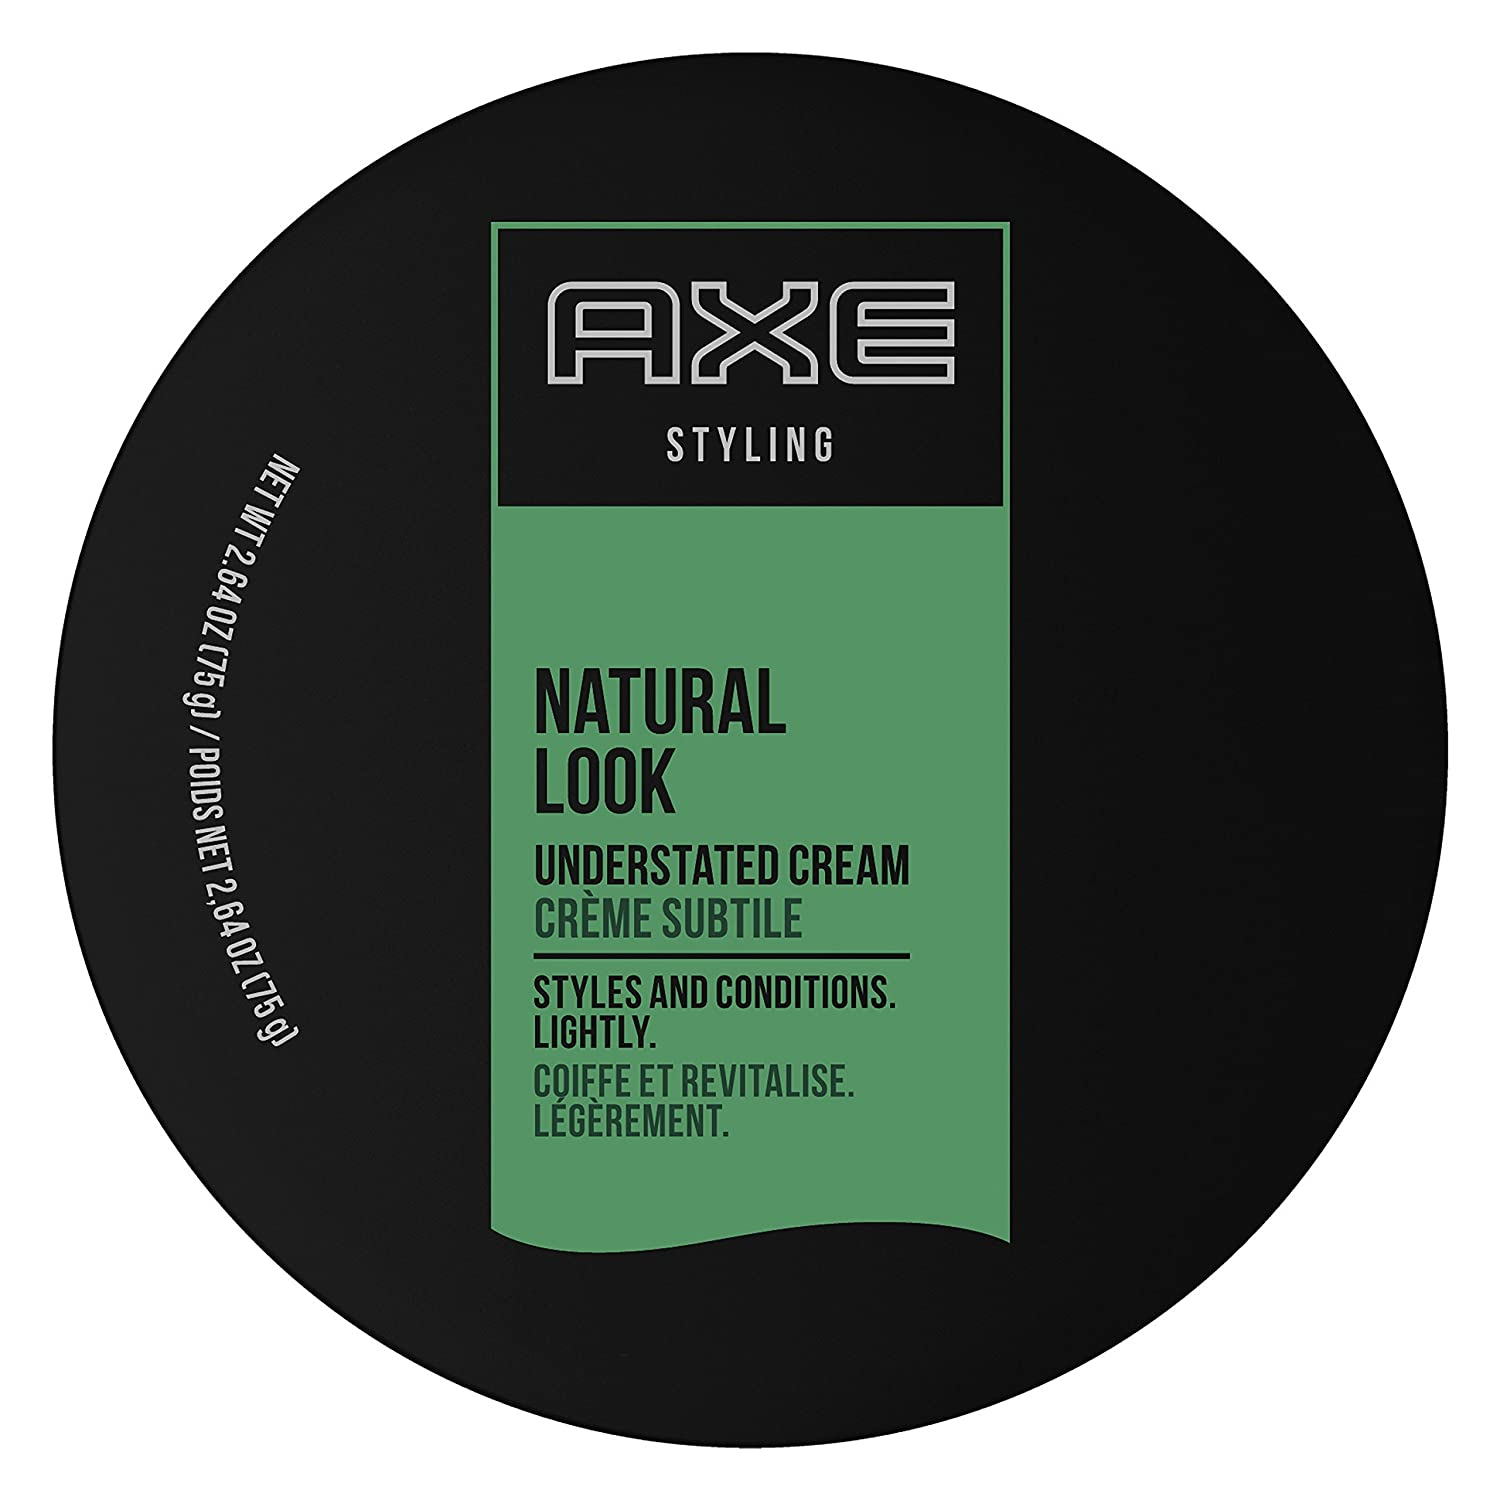 Natural Understated Look Cream by AXE for Men - 2.64 oz Cream 10079400115758